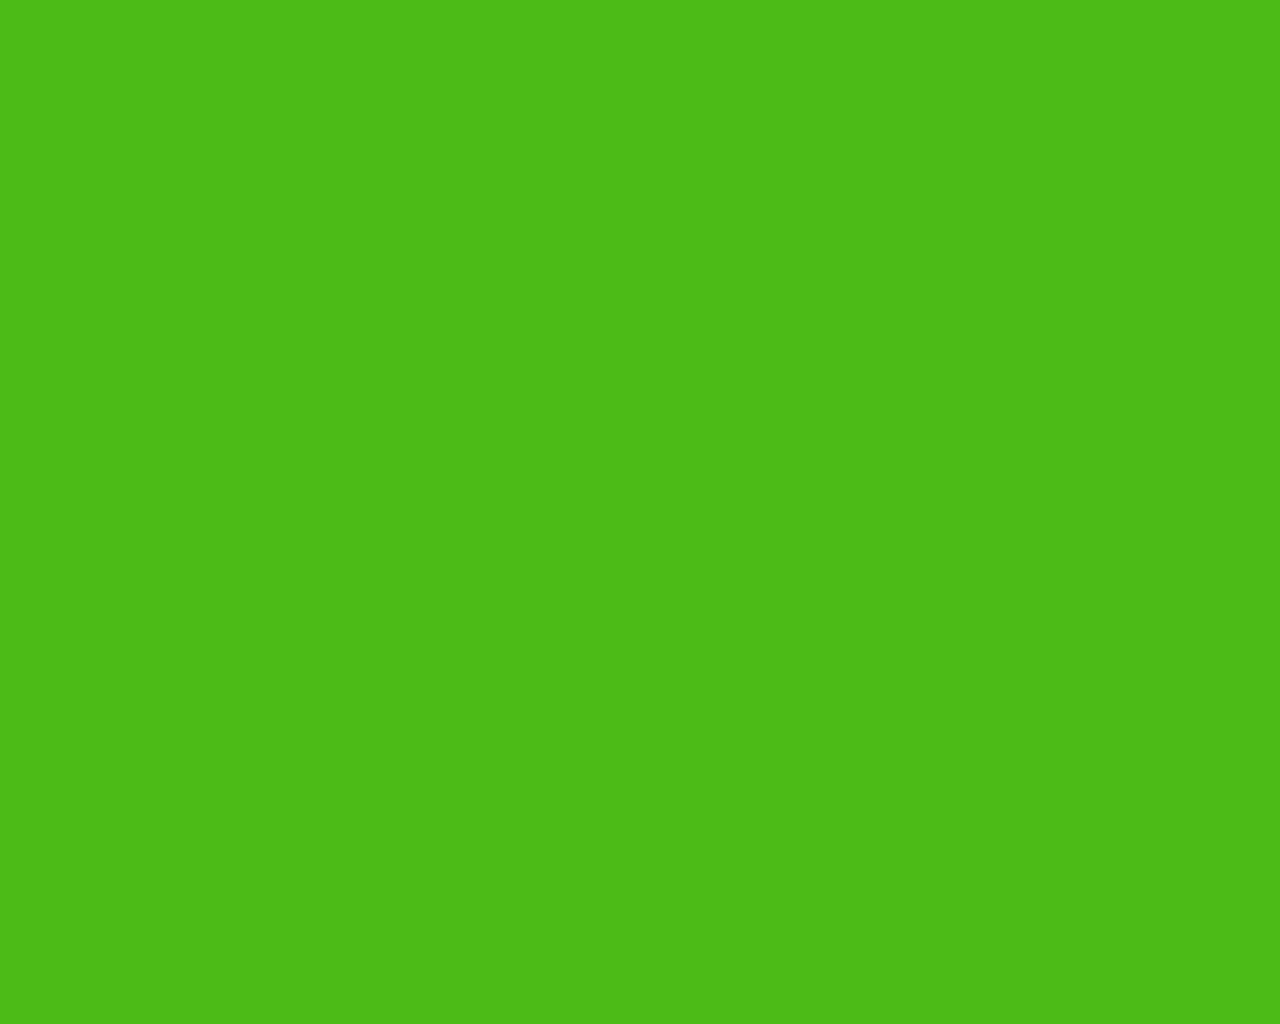 1280x1024 Kelly Green Solid Color Background